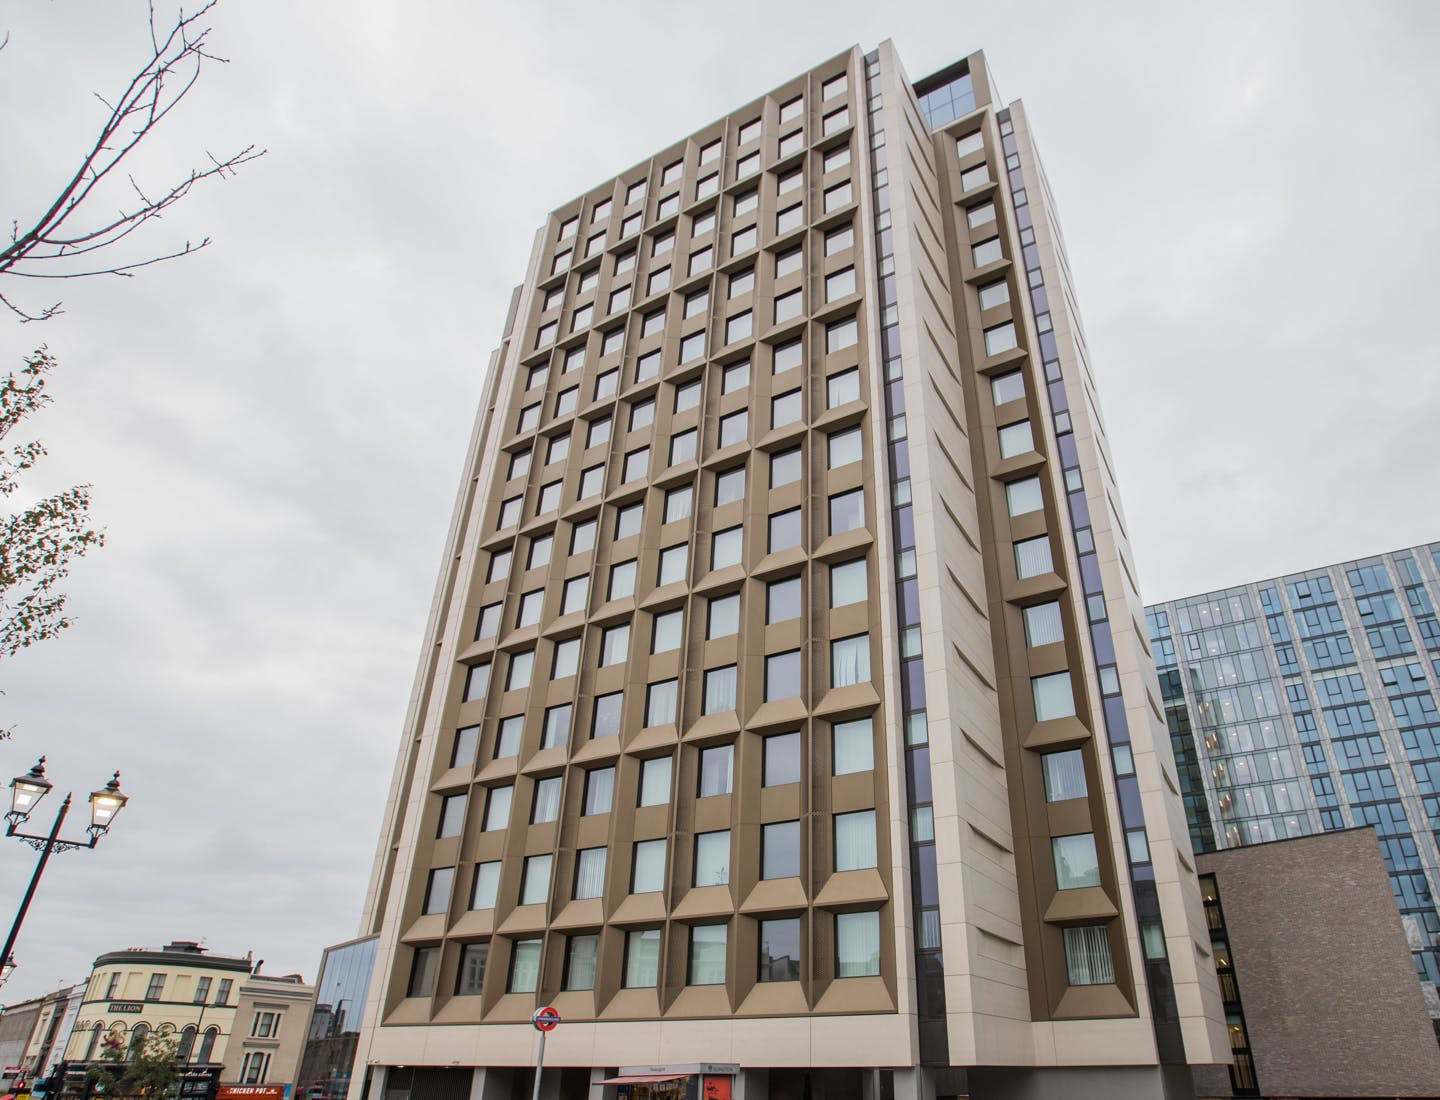 Façades that adapt  - Archway Tower 43